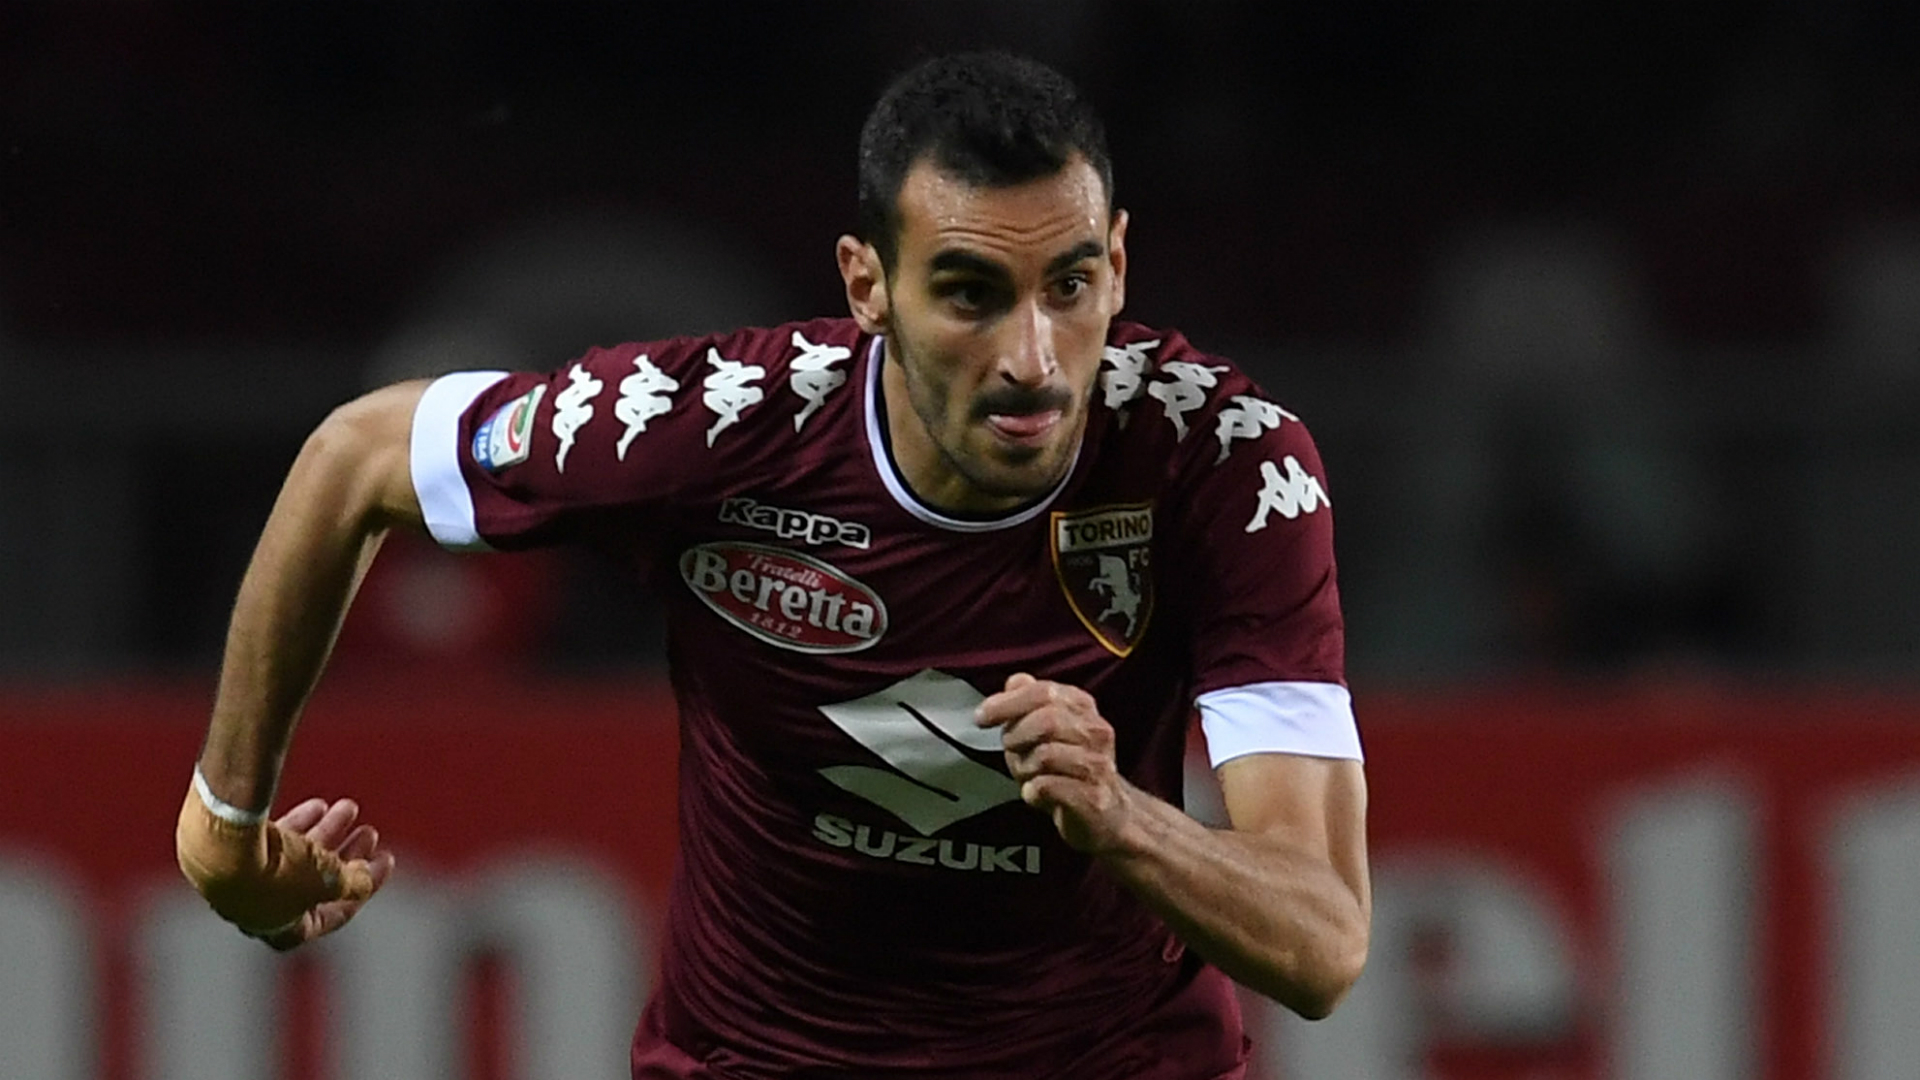 (Image) Davide Zappacosta pictured ahead of his flight to seal Chelsea move